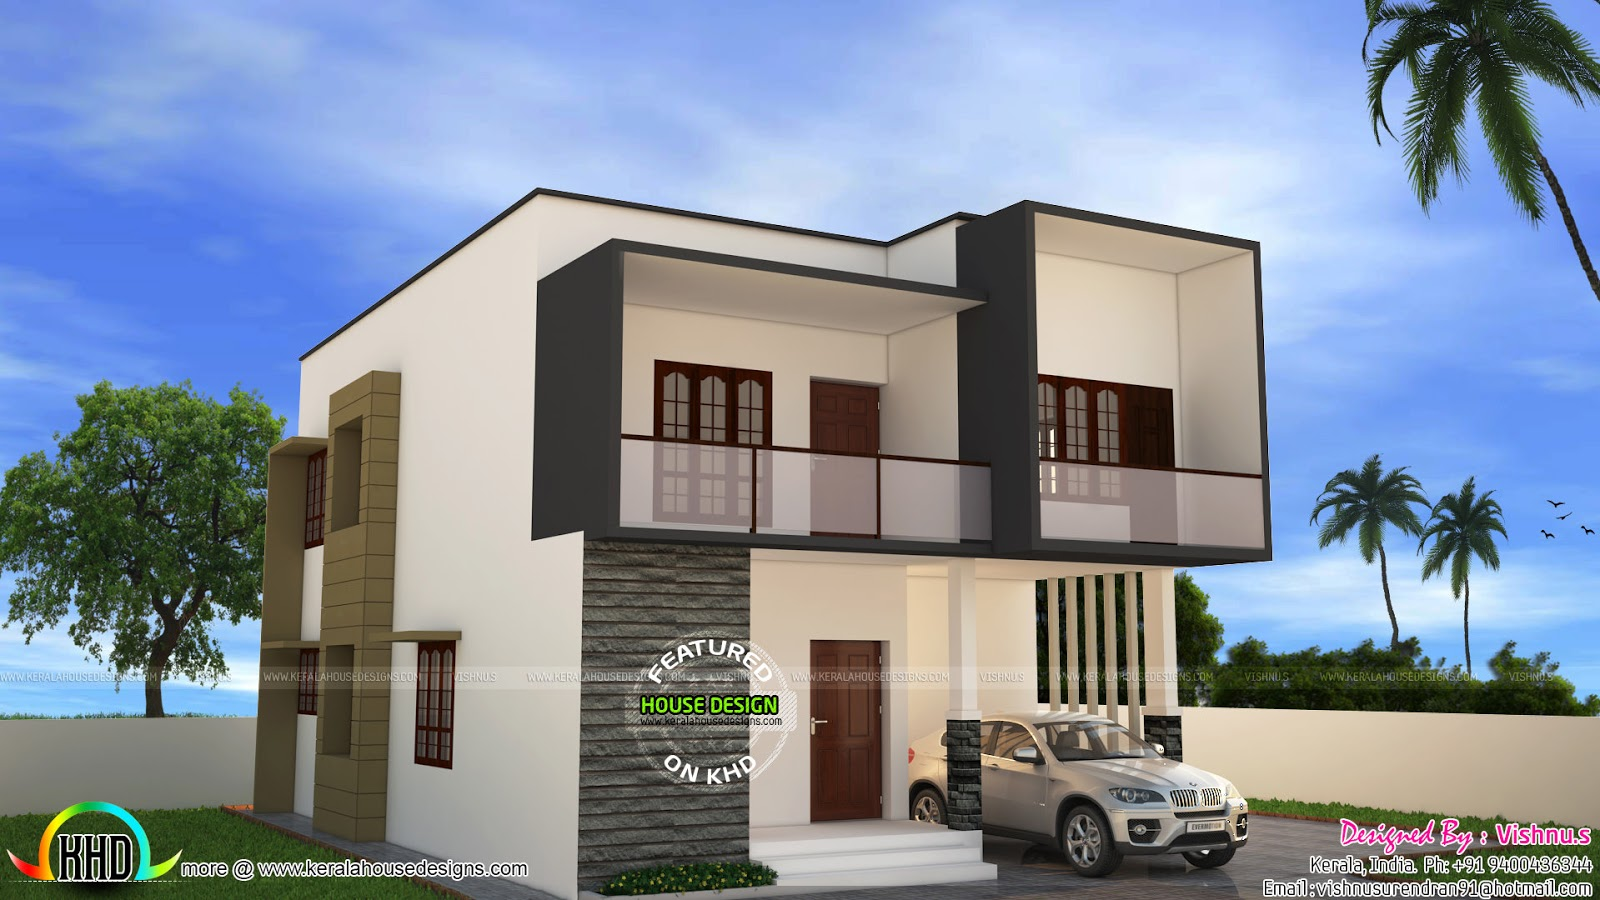 Simple modern house by vishnu s kerala home design and for Simple kerala home designs